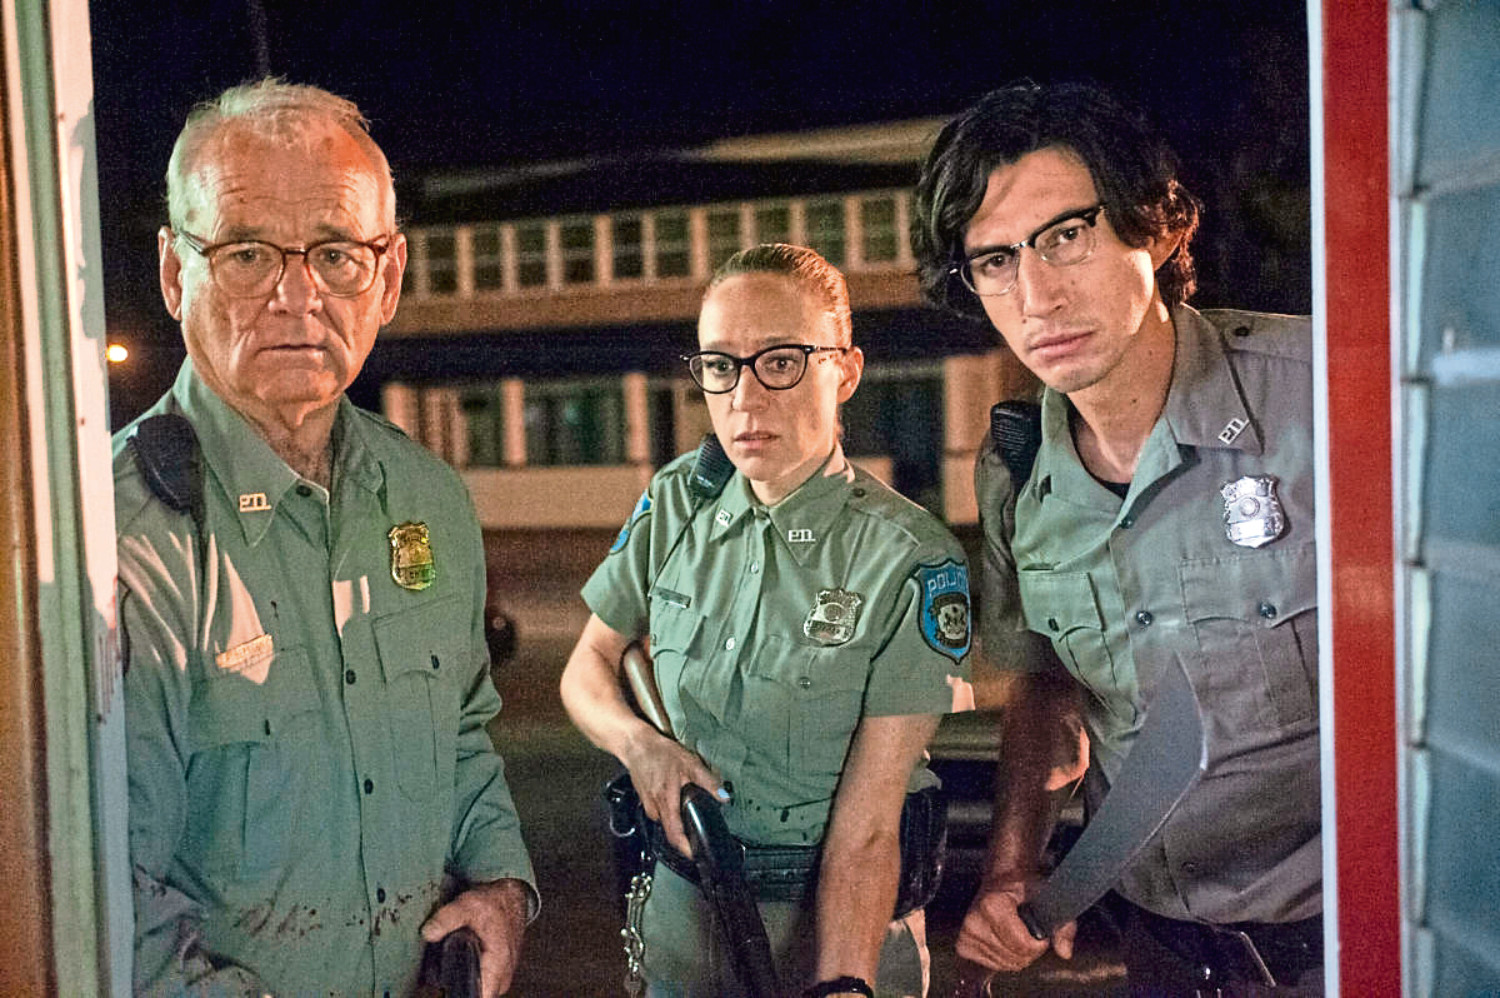 New zombie flick The Dead Don't Die looks at how a small town copies with the undead - but what if a similar situation emerged in Tayside?